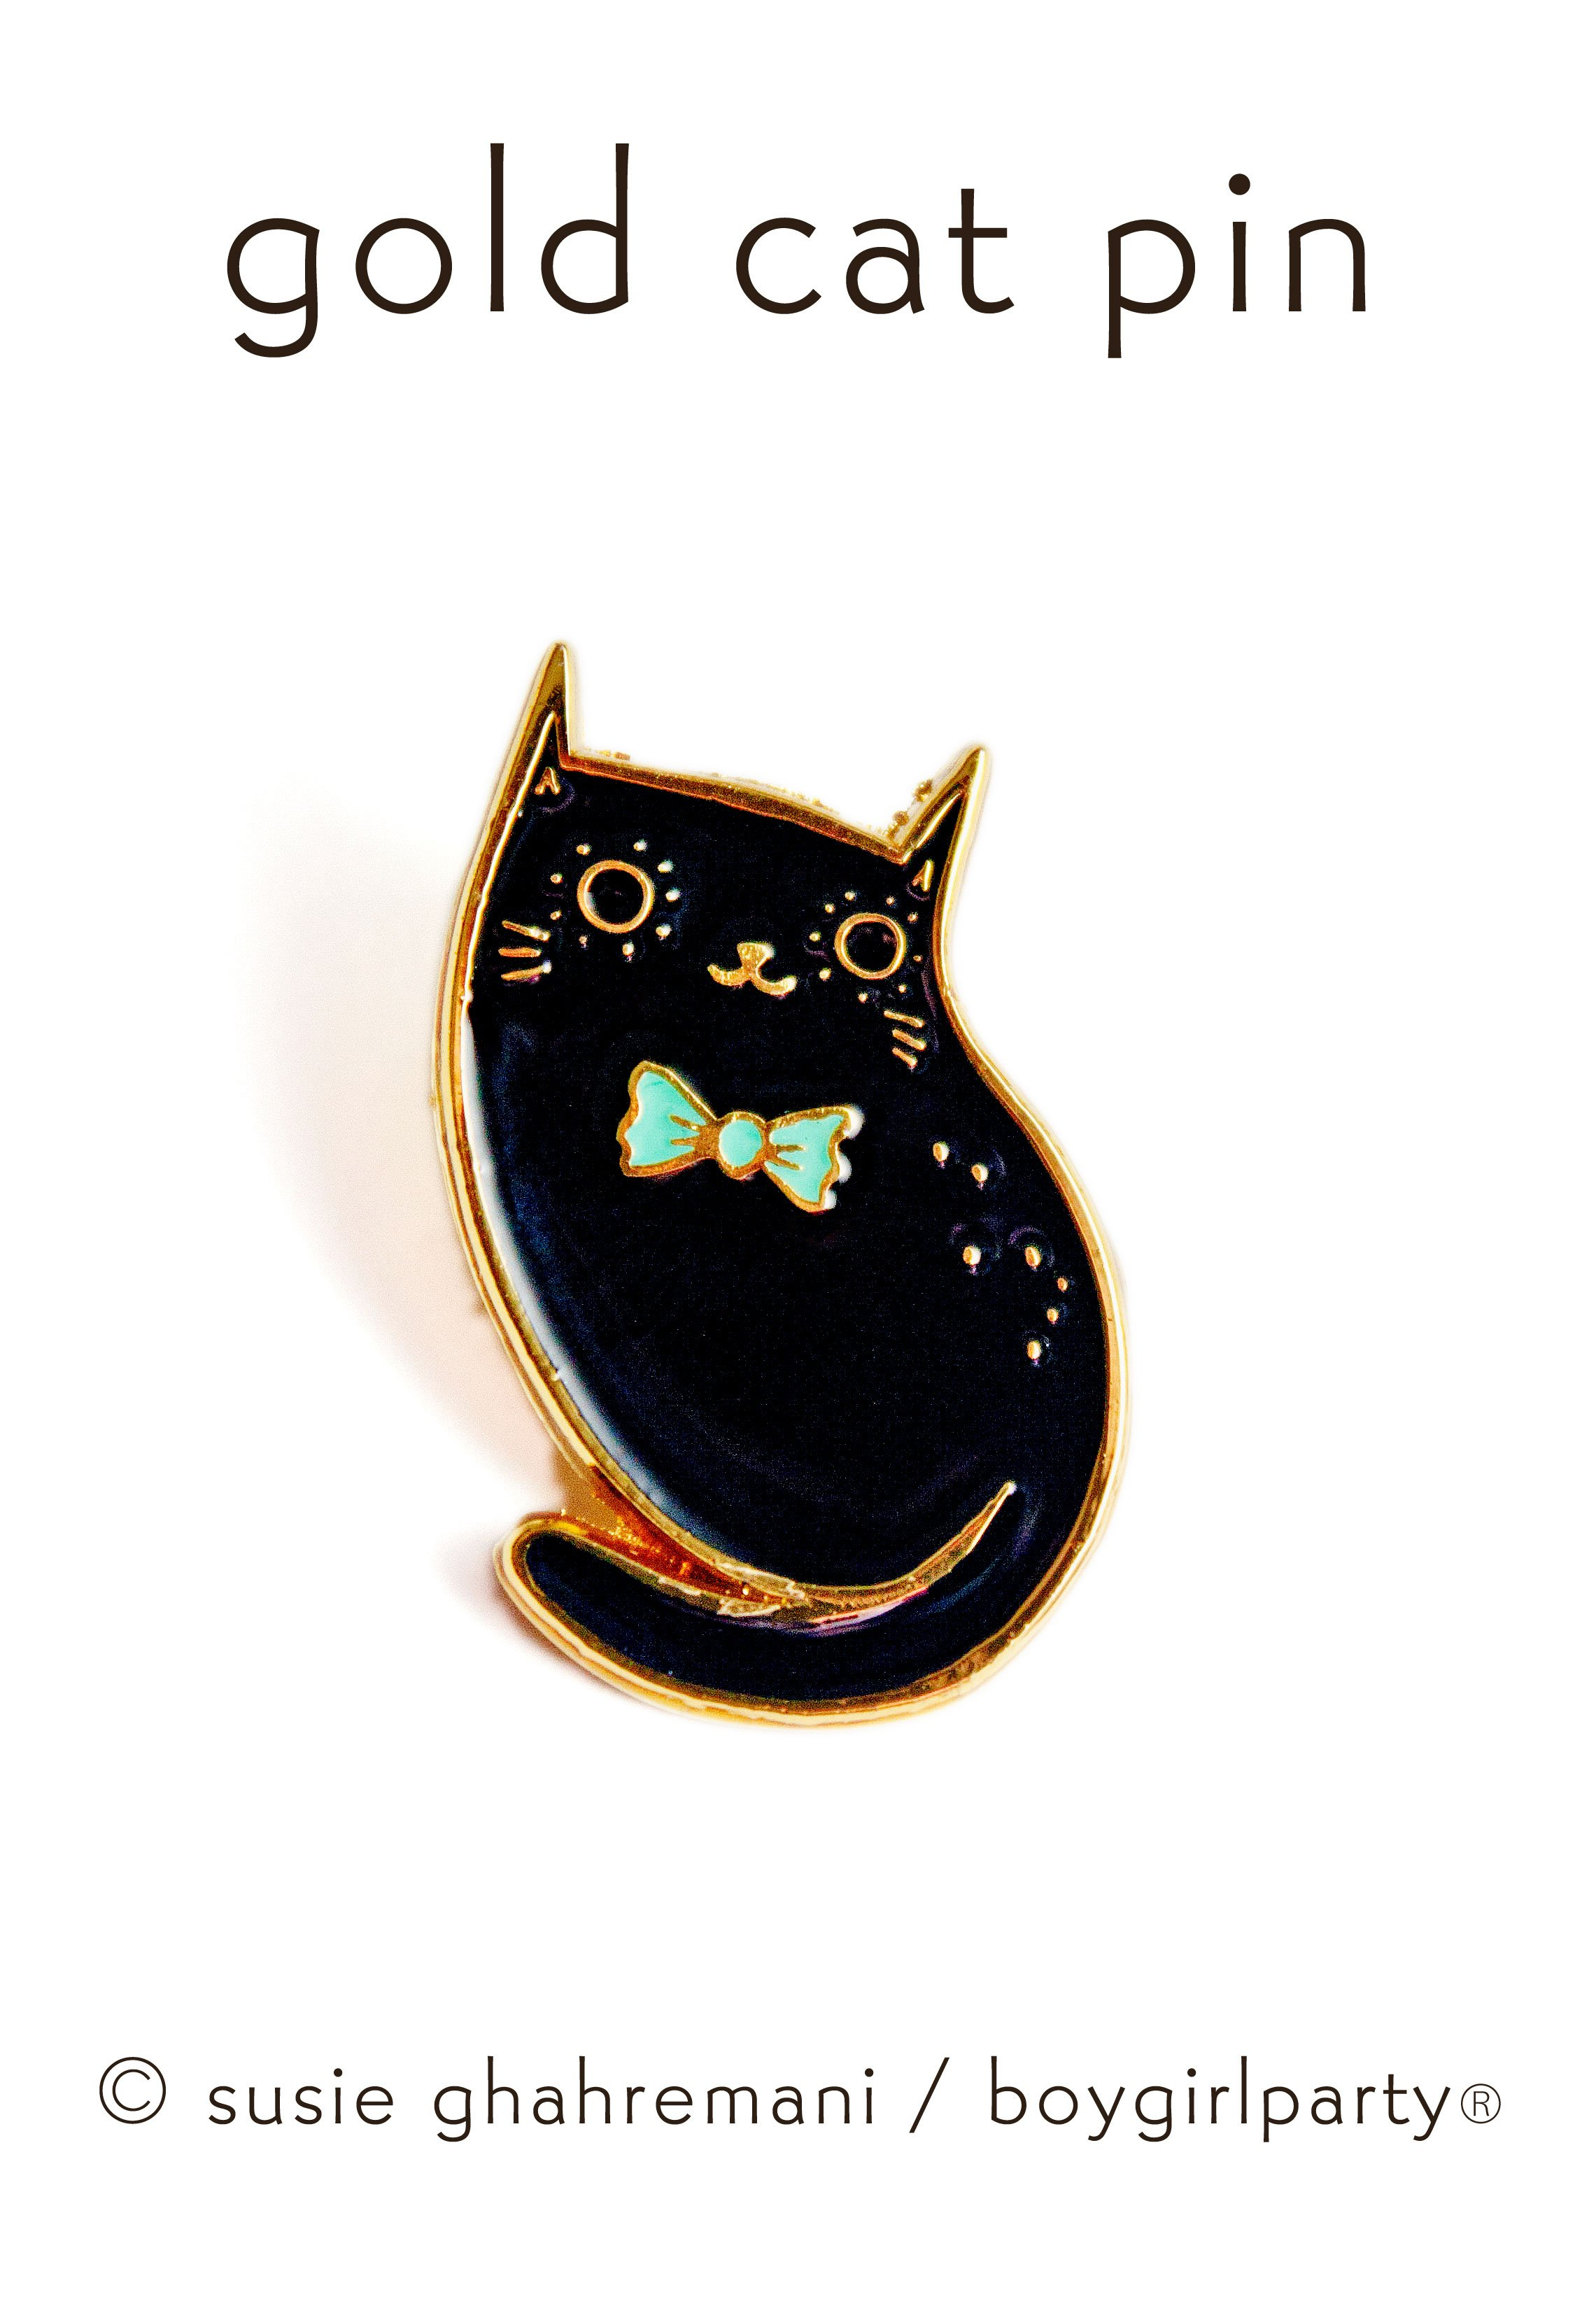 Image of Limited Edition Black Cat Pin (Gold) by boygirlparty